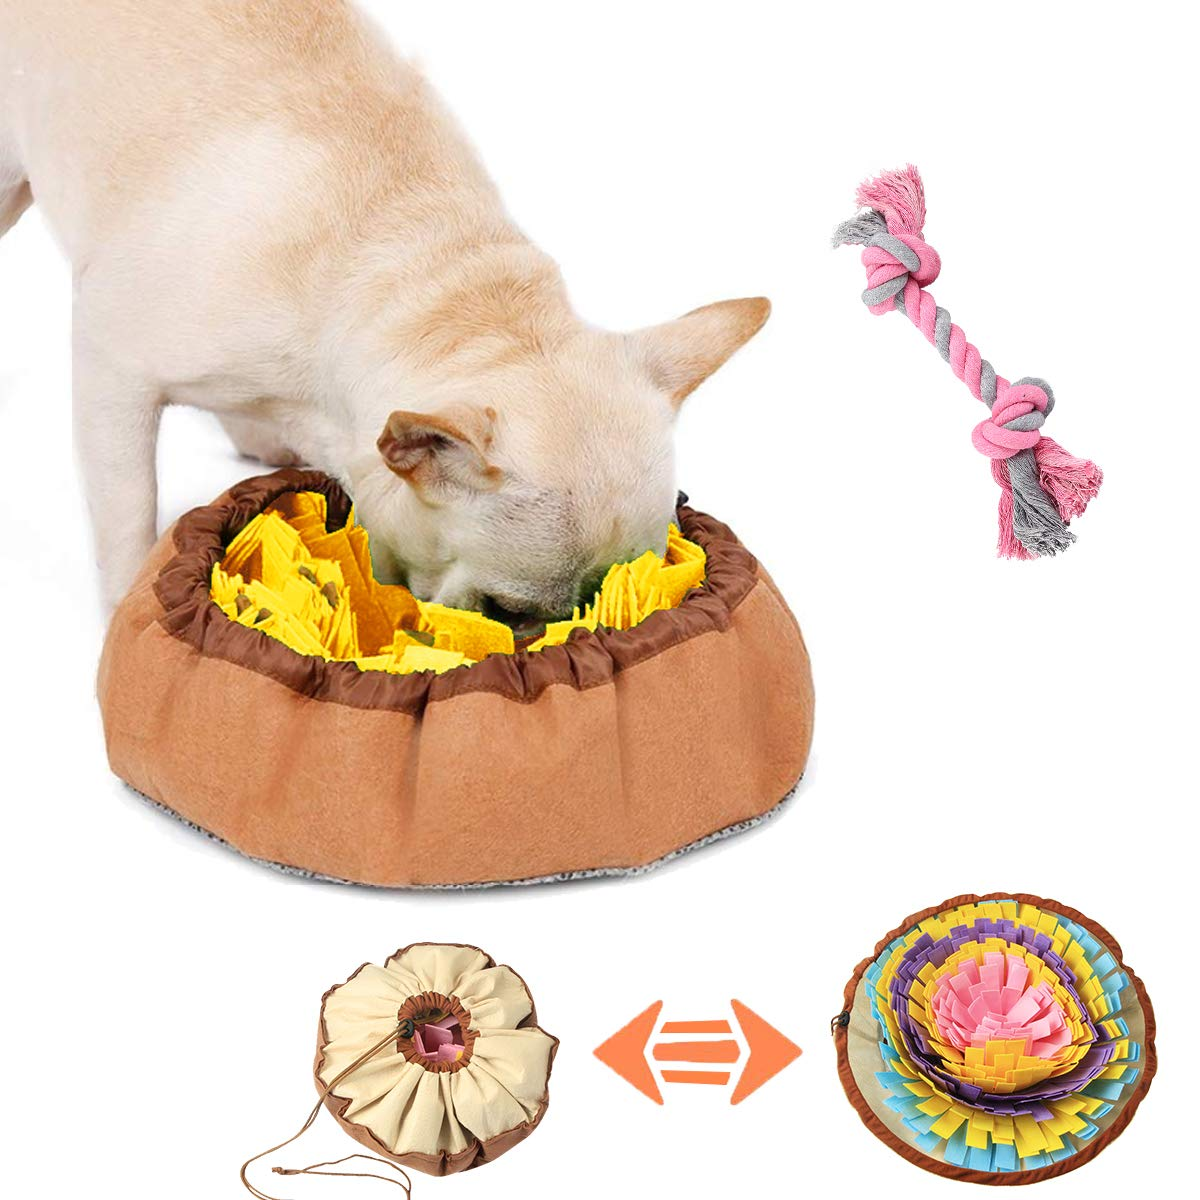 Coomour Dog Slow Feeding Training Mat, Pet Snuffle Mat Pet Floral Activity Mat for Dog Foraging Skills and Stress Release (One)